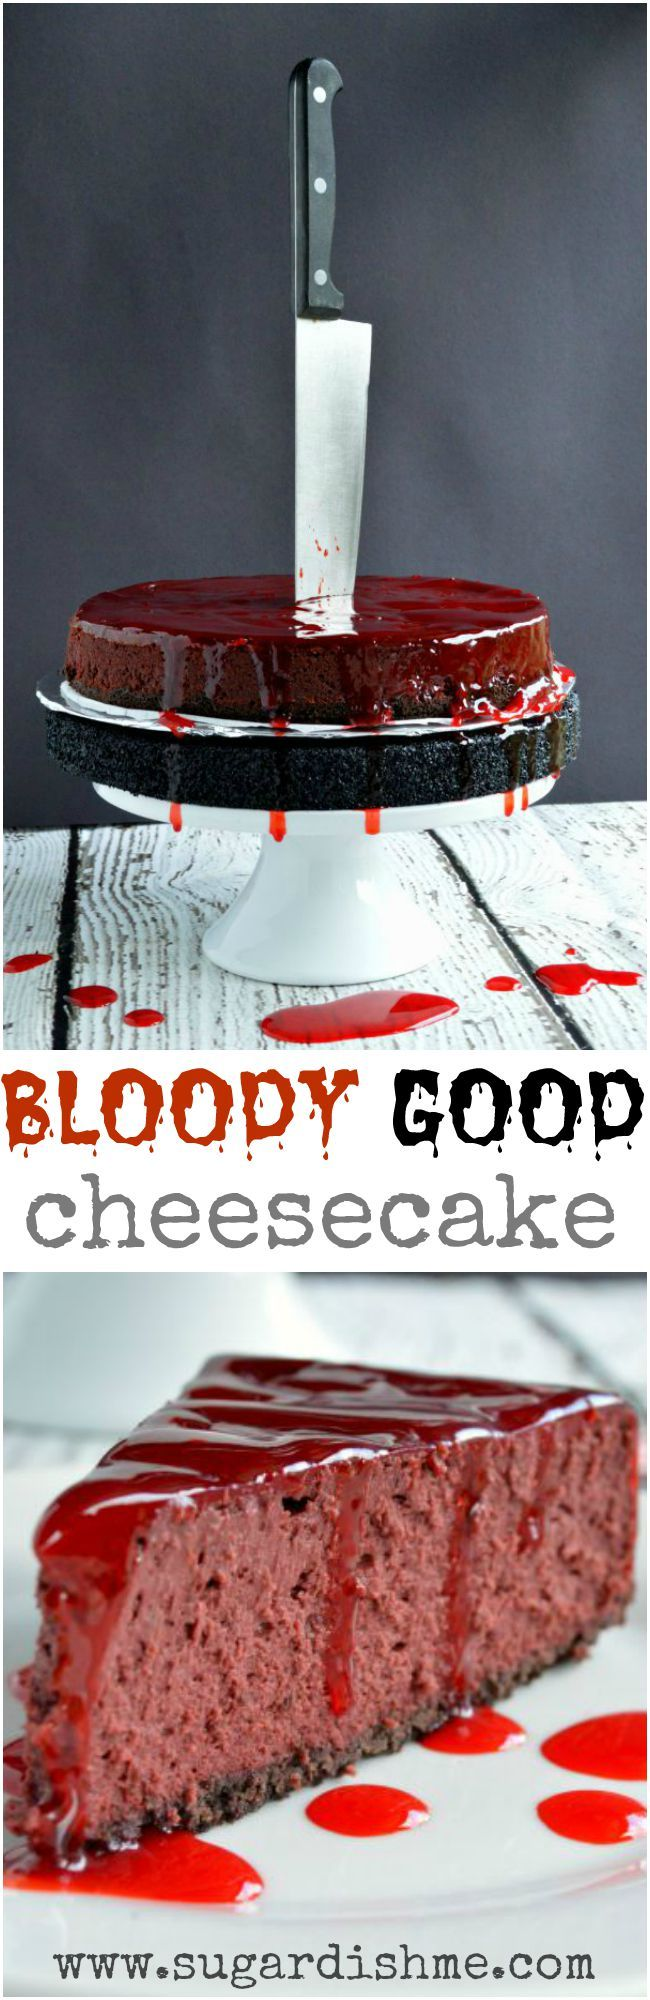 Bloody Good Cheesecake - Sugar Dish Me